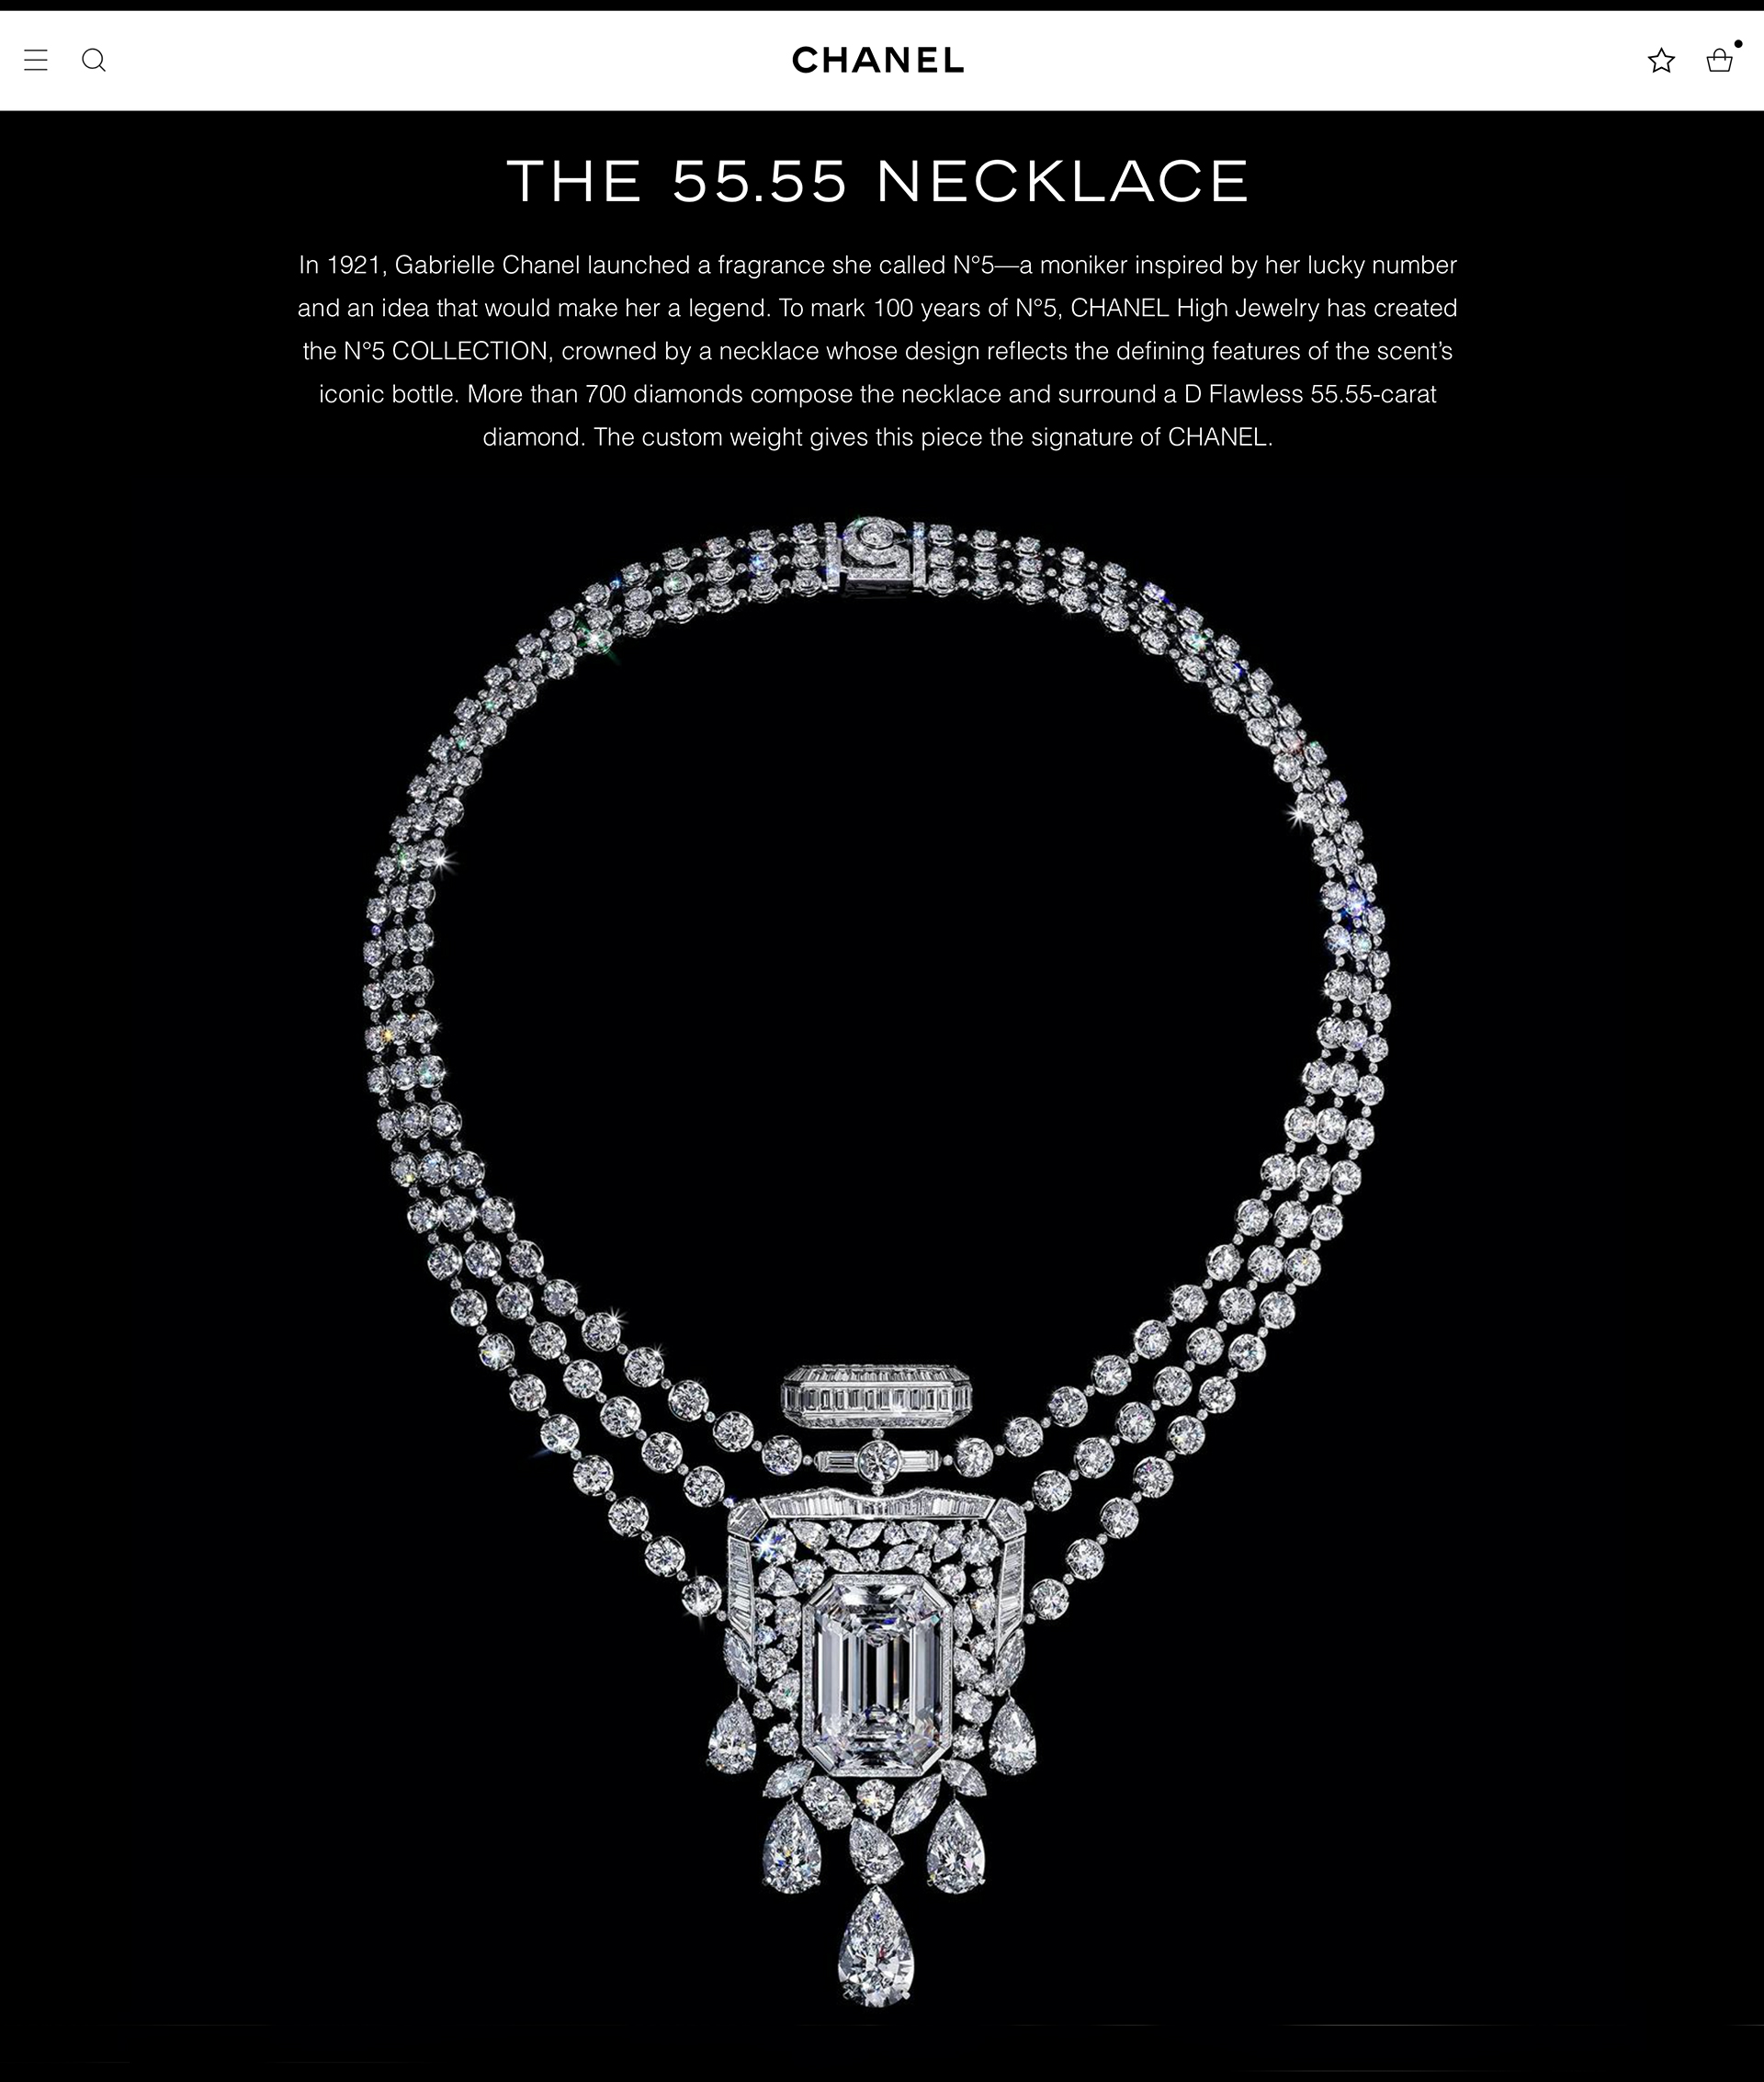 CHANEL No.5 collection necklace high jewelry